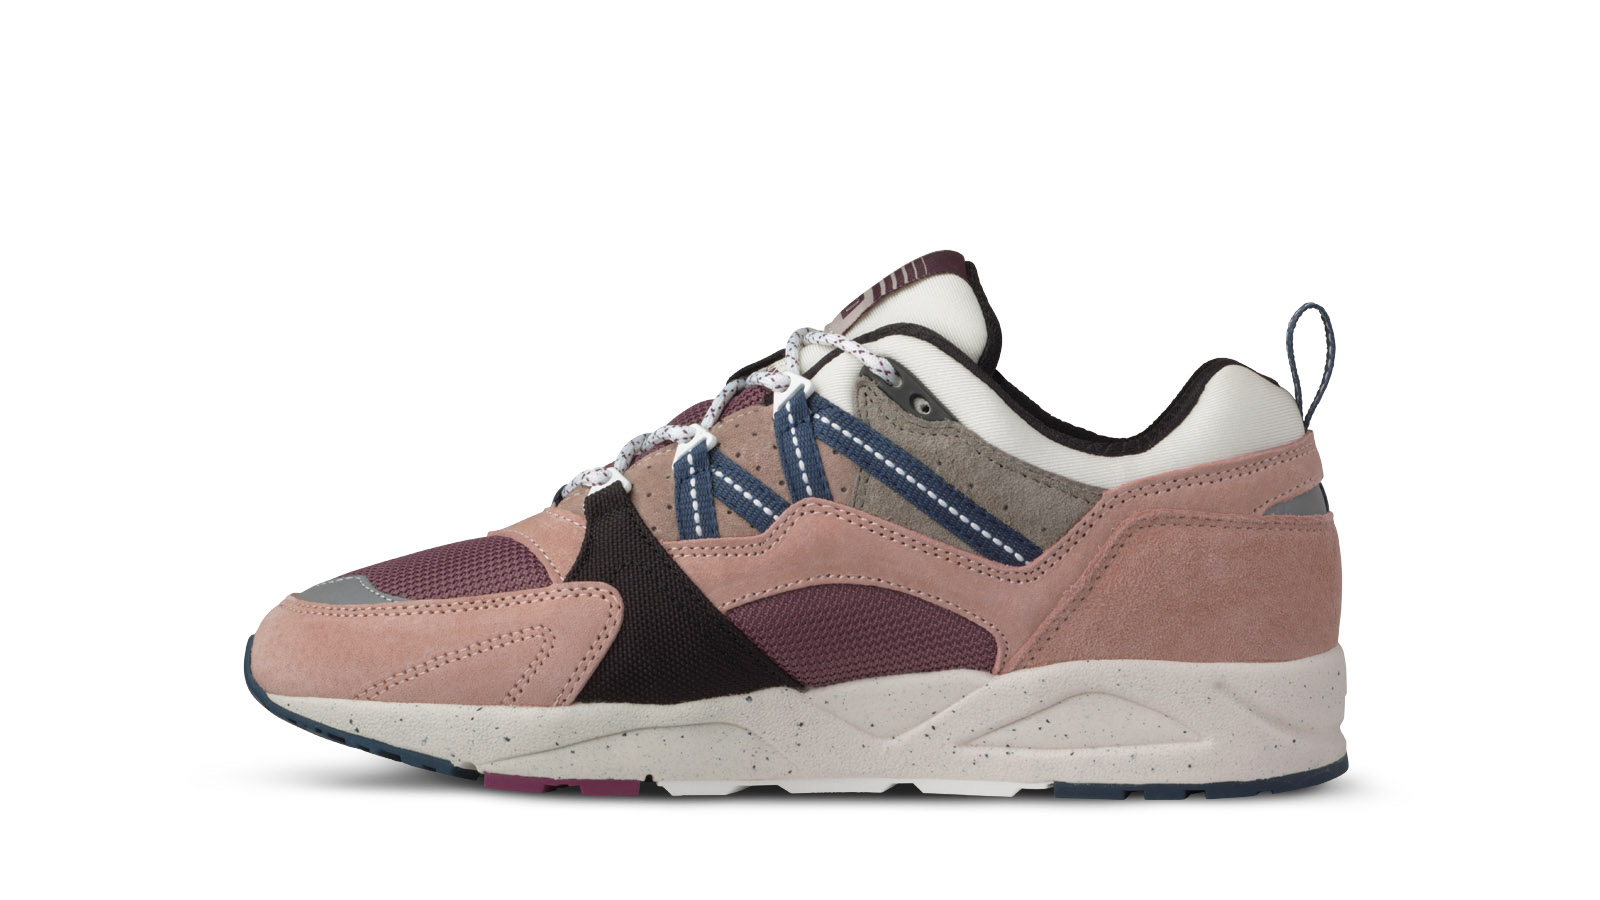 karhu-fusion-2-0-color-of-mood-misty-rose-reflecting-pond-femme-side-2